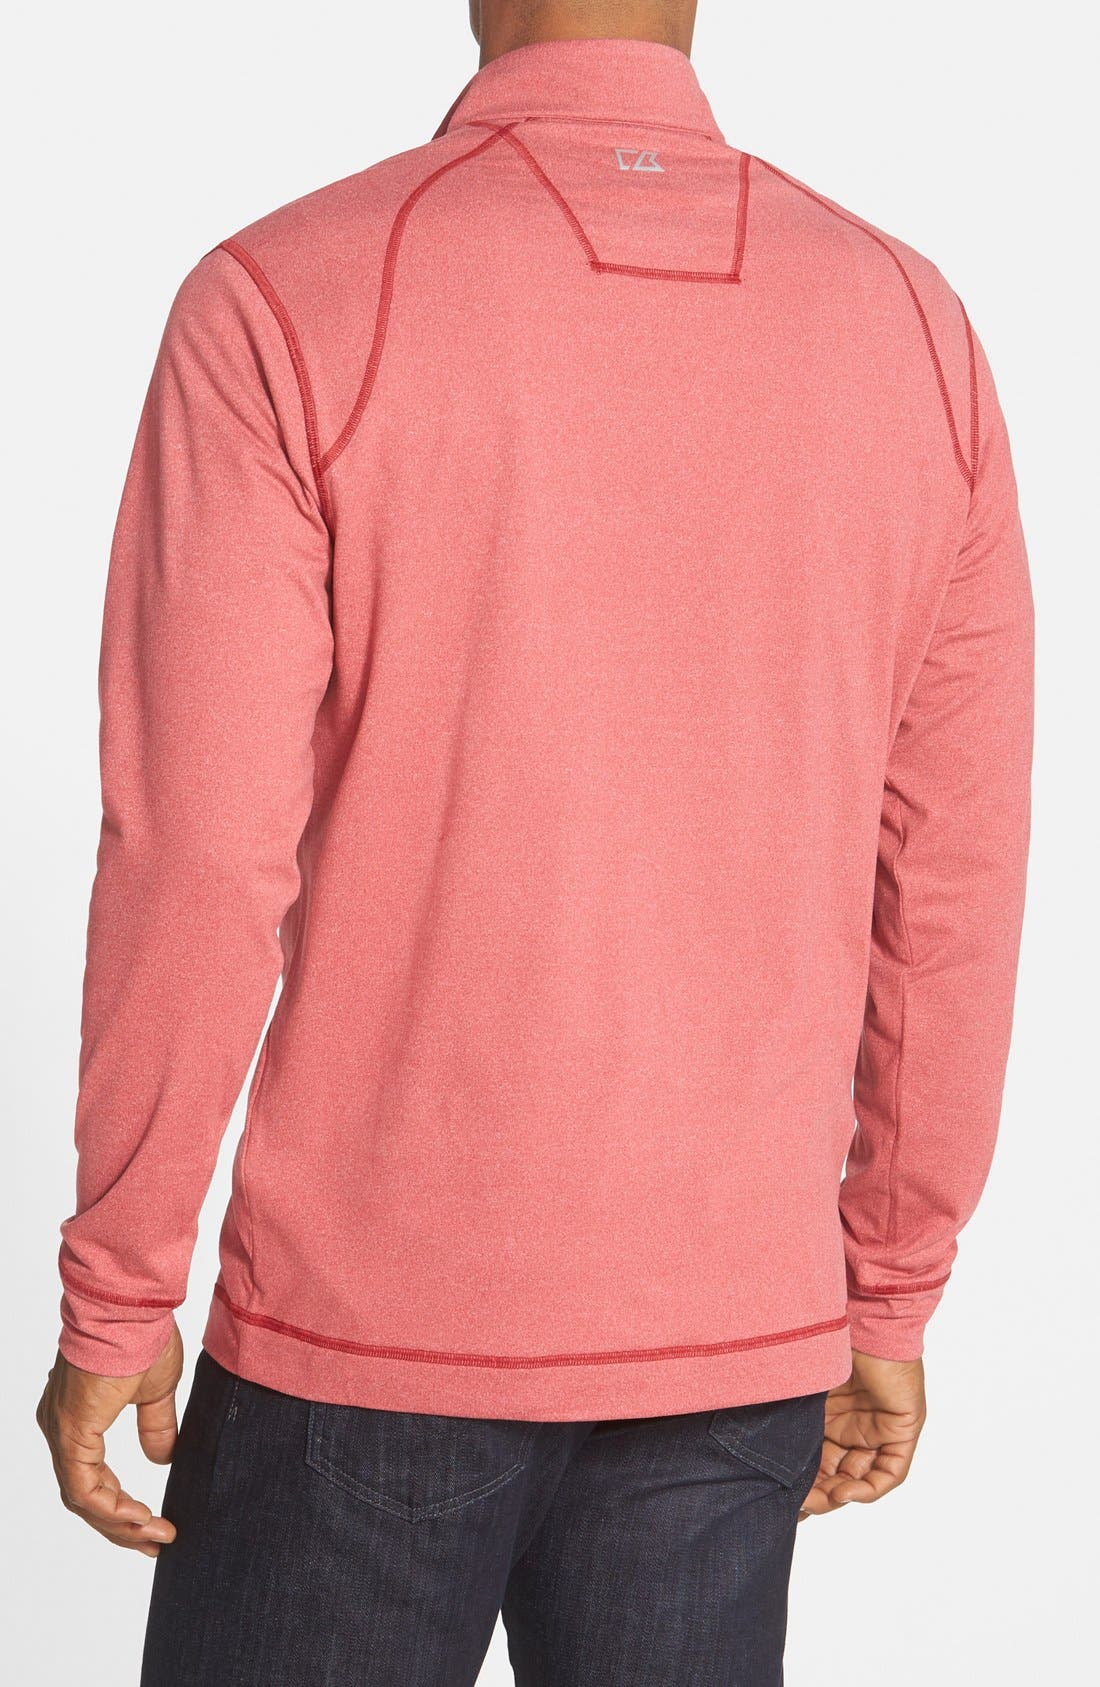 'Topspin' DryTec Half Zip Pullover,                             Alternate thumbnail 3, color,                             Cardinal Red Heather